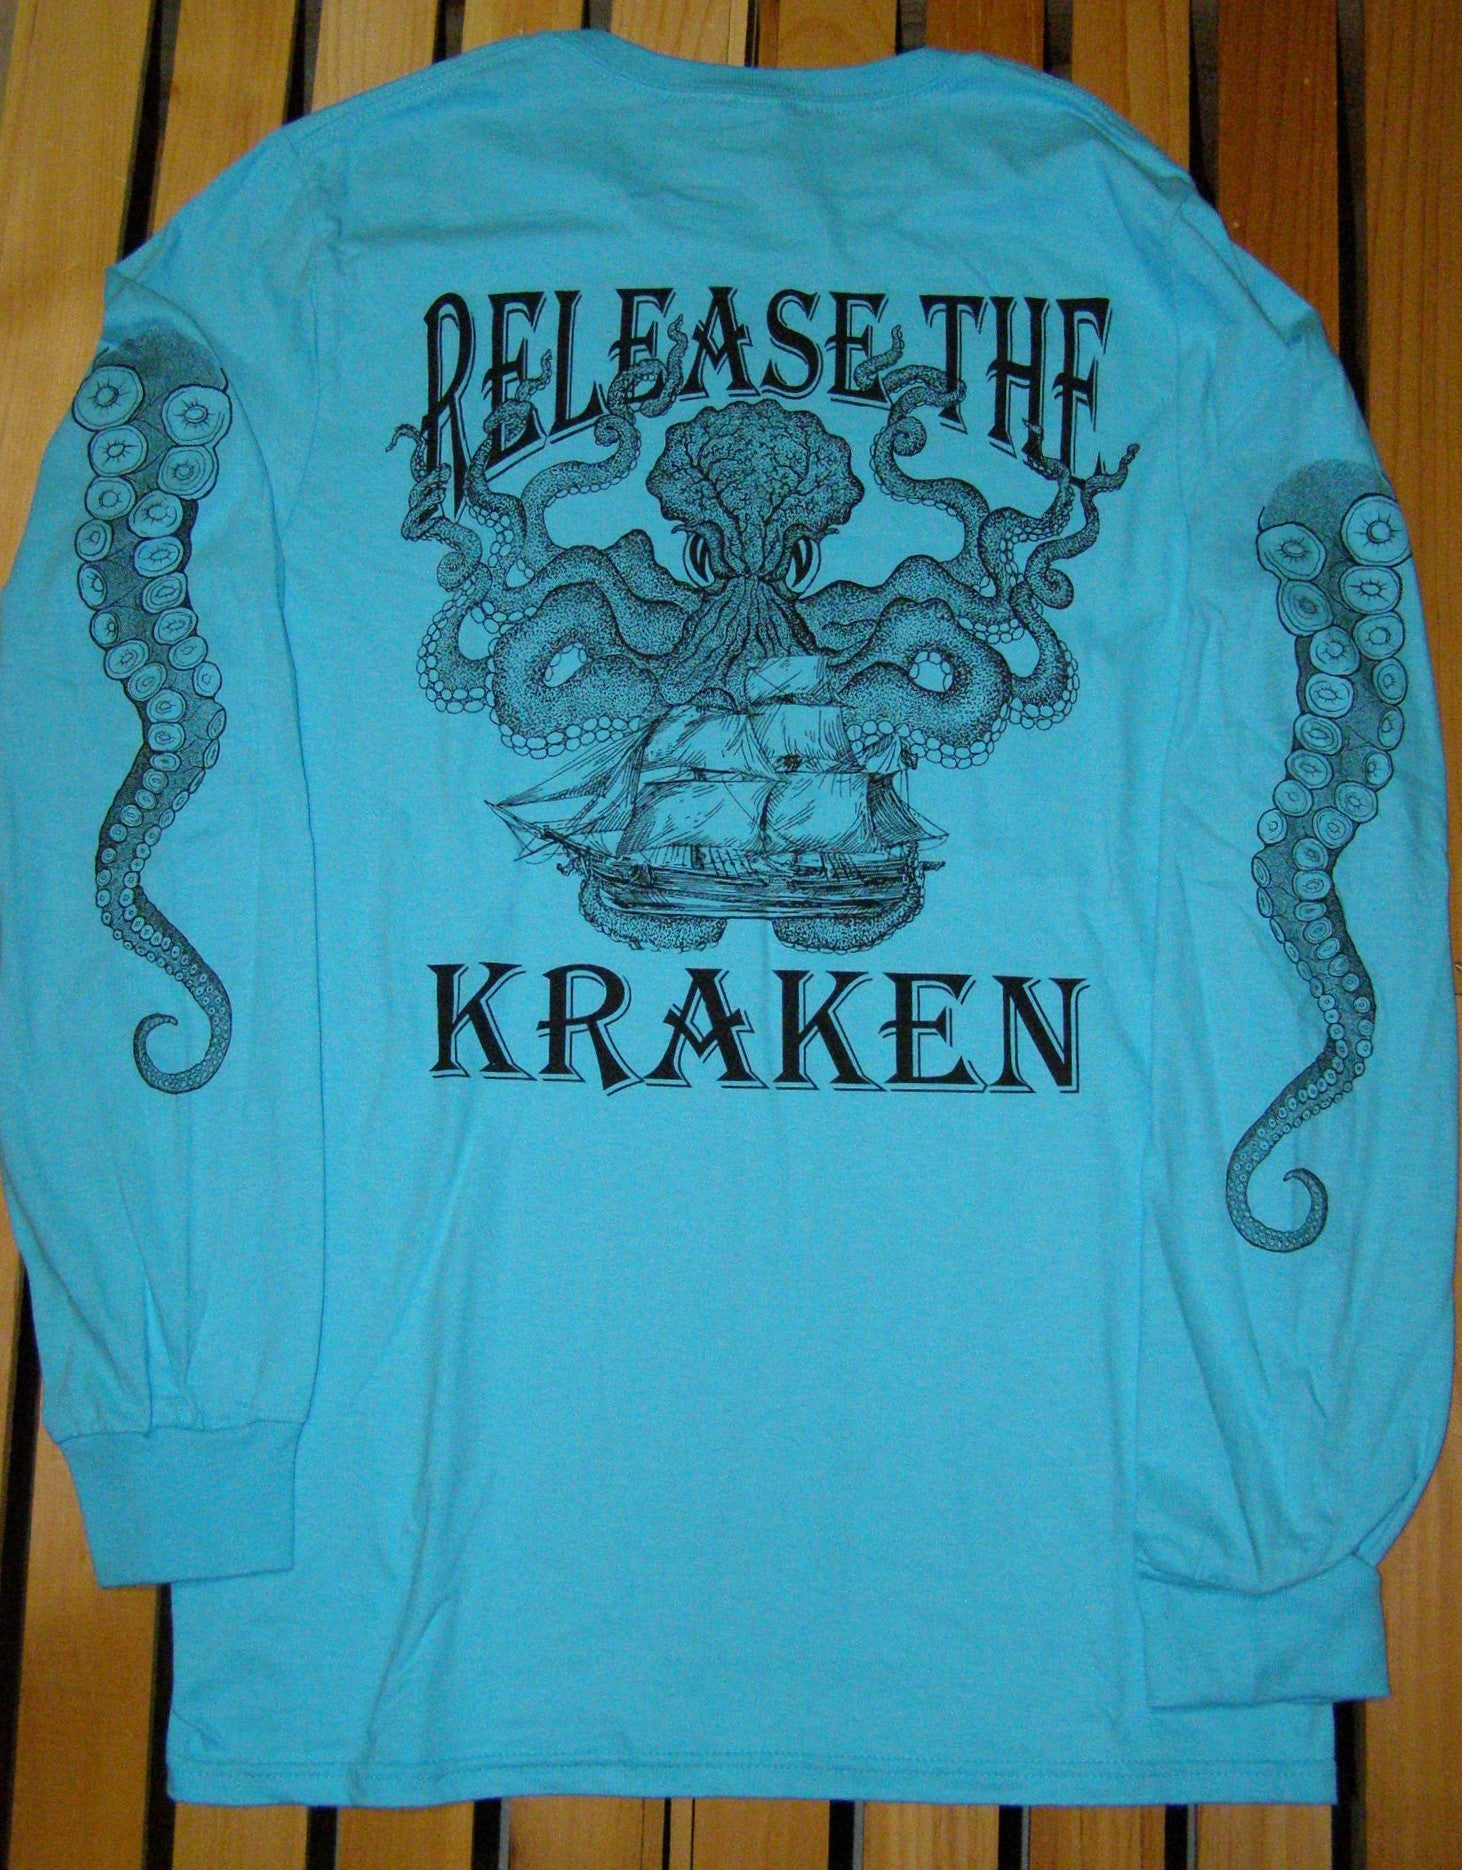 T-Shirt - Release the Kraken Scuba Blue LS